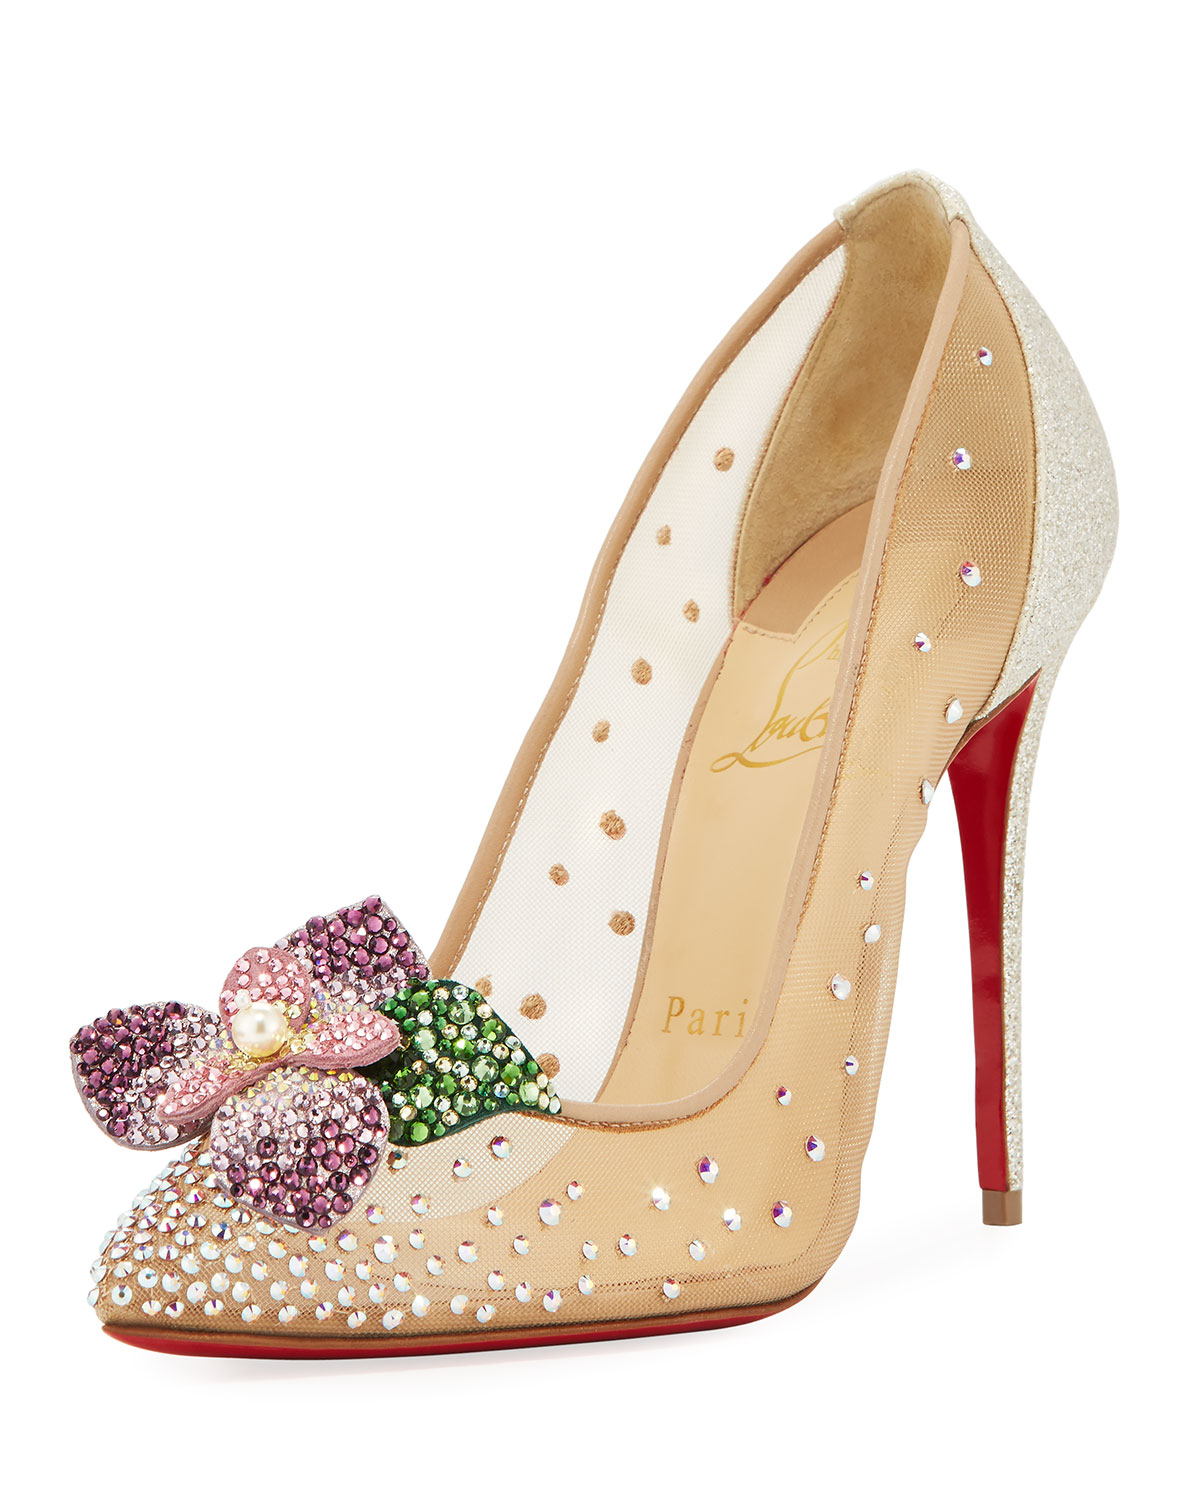 61d61d1ec37 Christian Louboutin Feerica Crystal-Embellished Red Sole Pumps ...